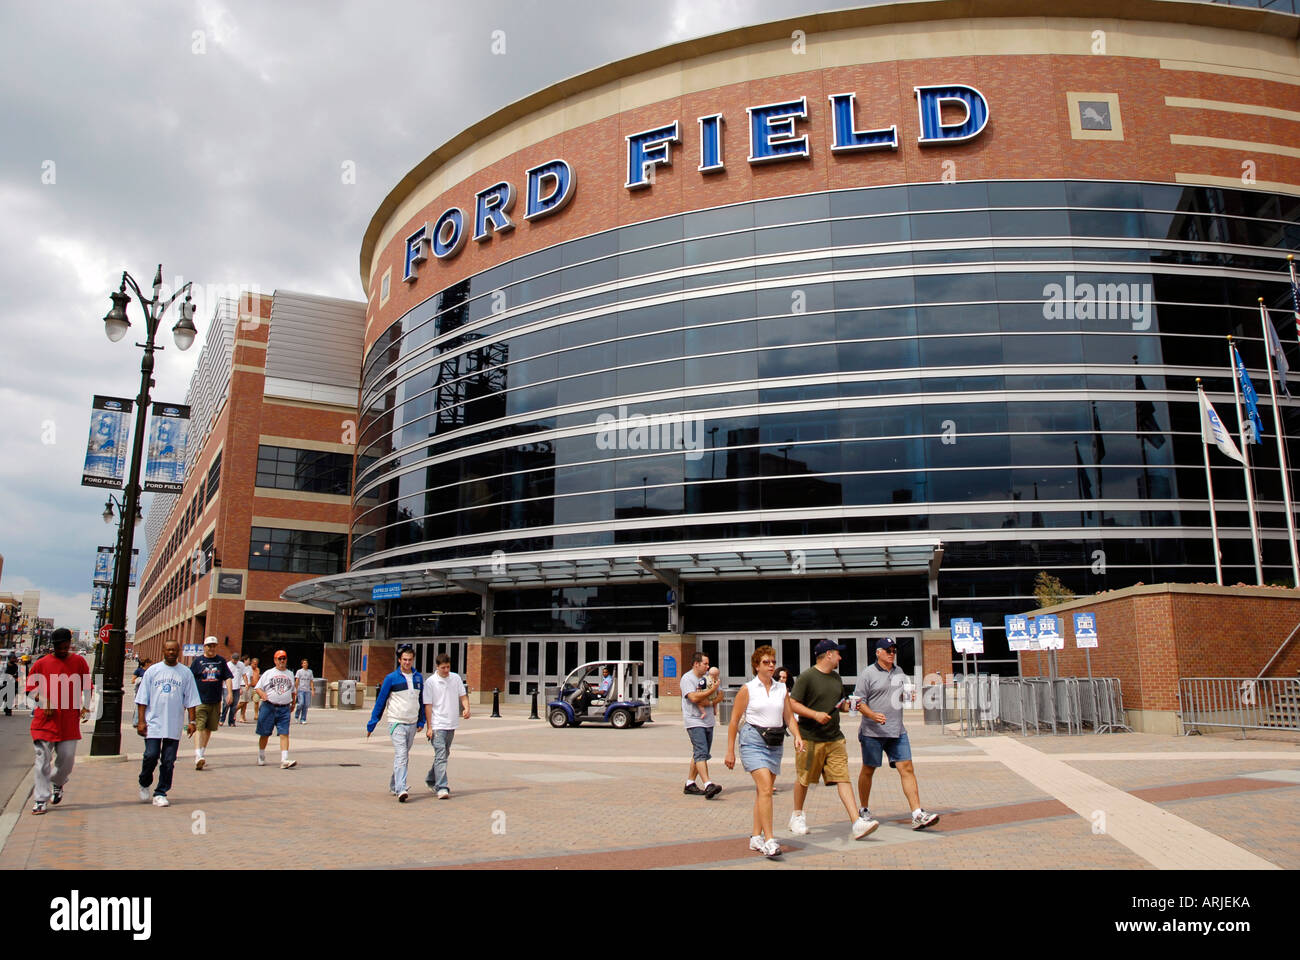 Ford Field entrance home of the professional football team Detroit Lions in Detroit Michigan MI - Stock Image